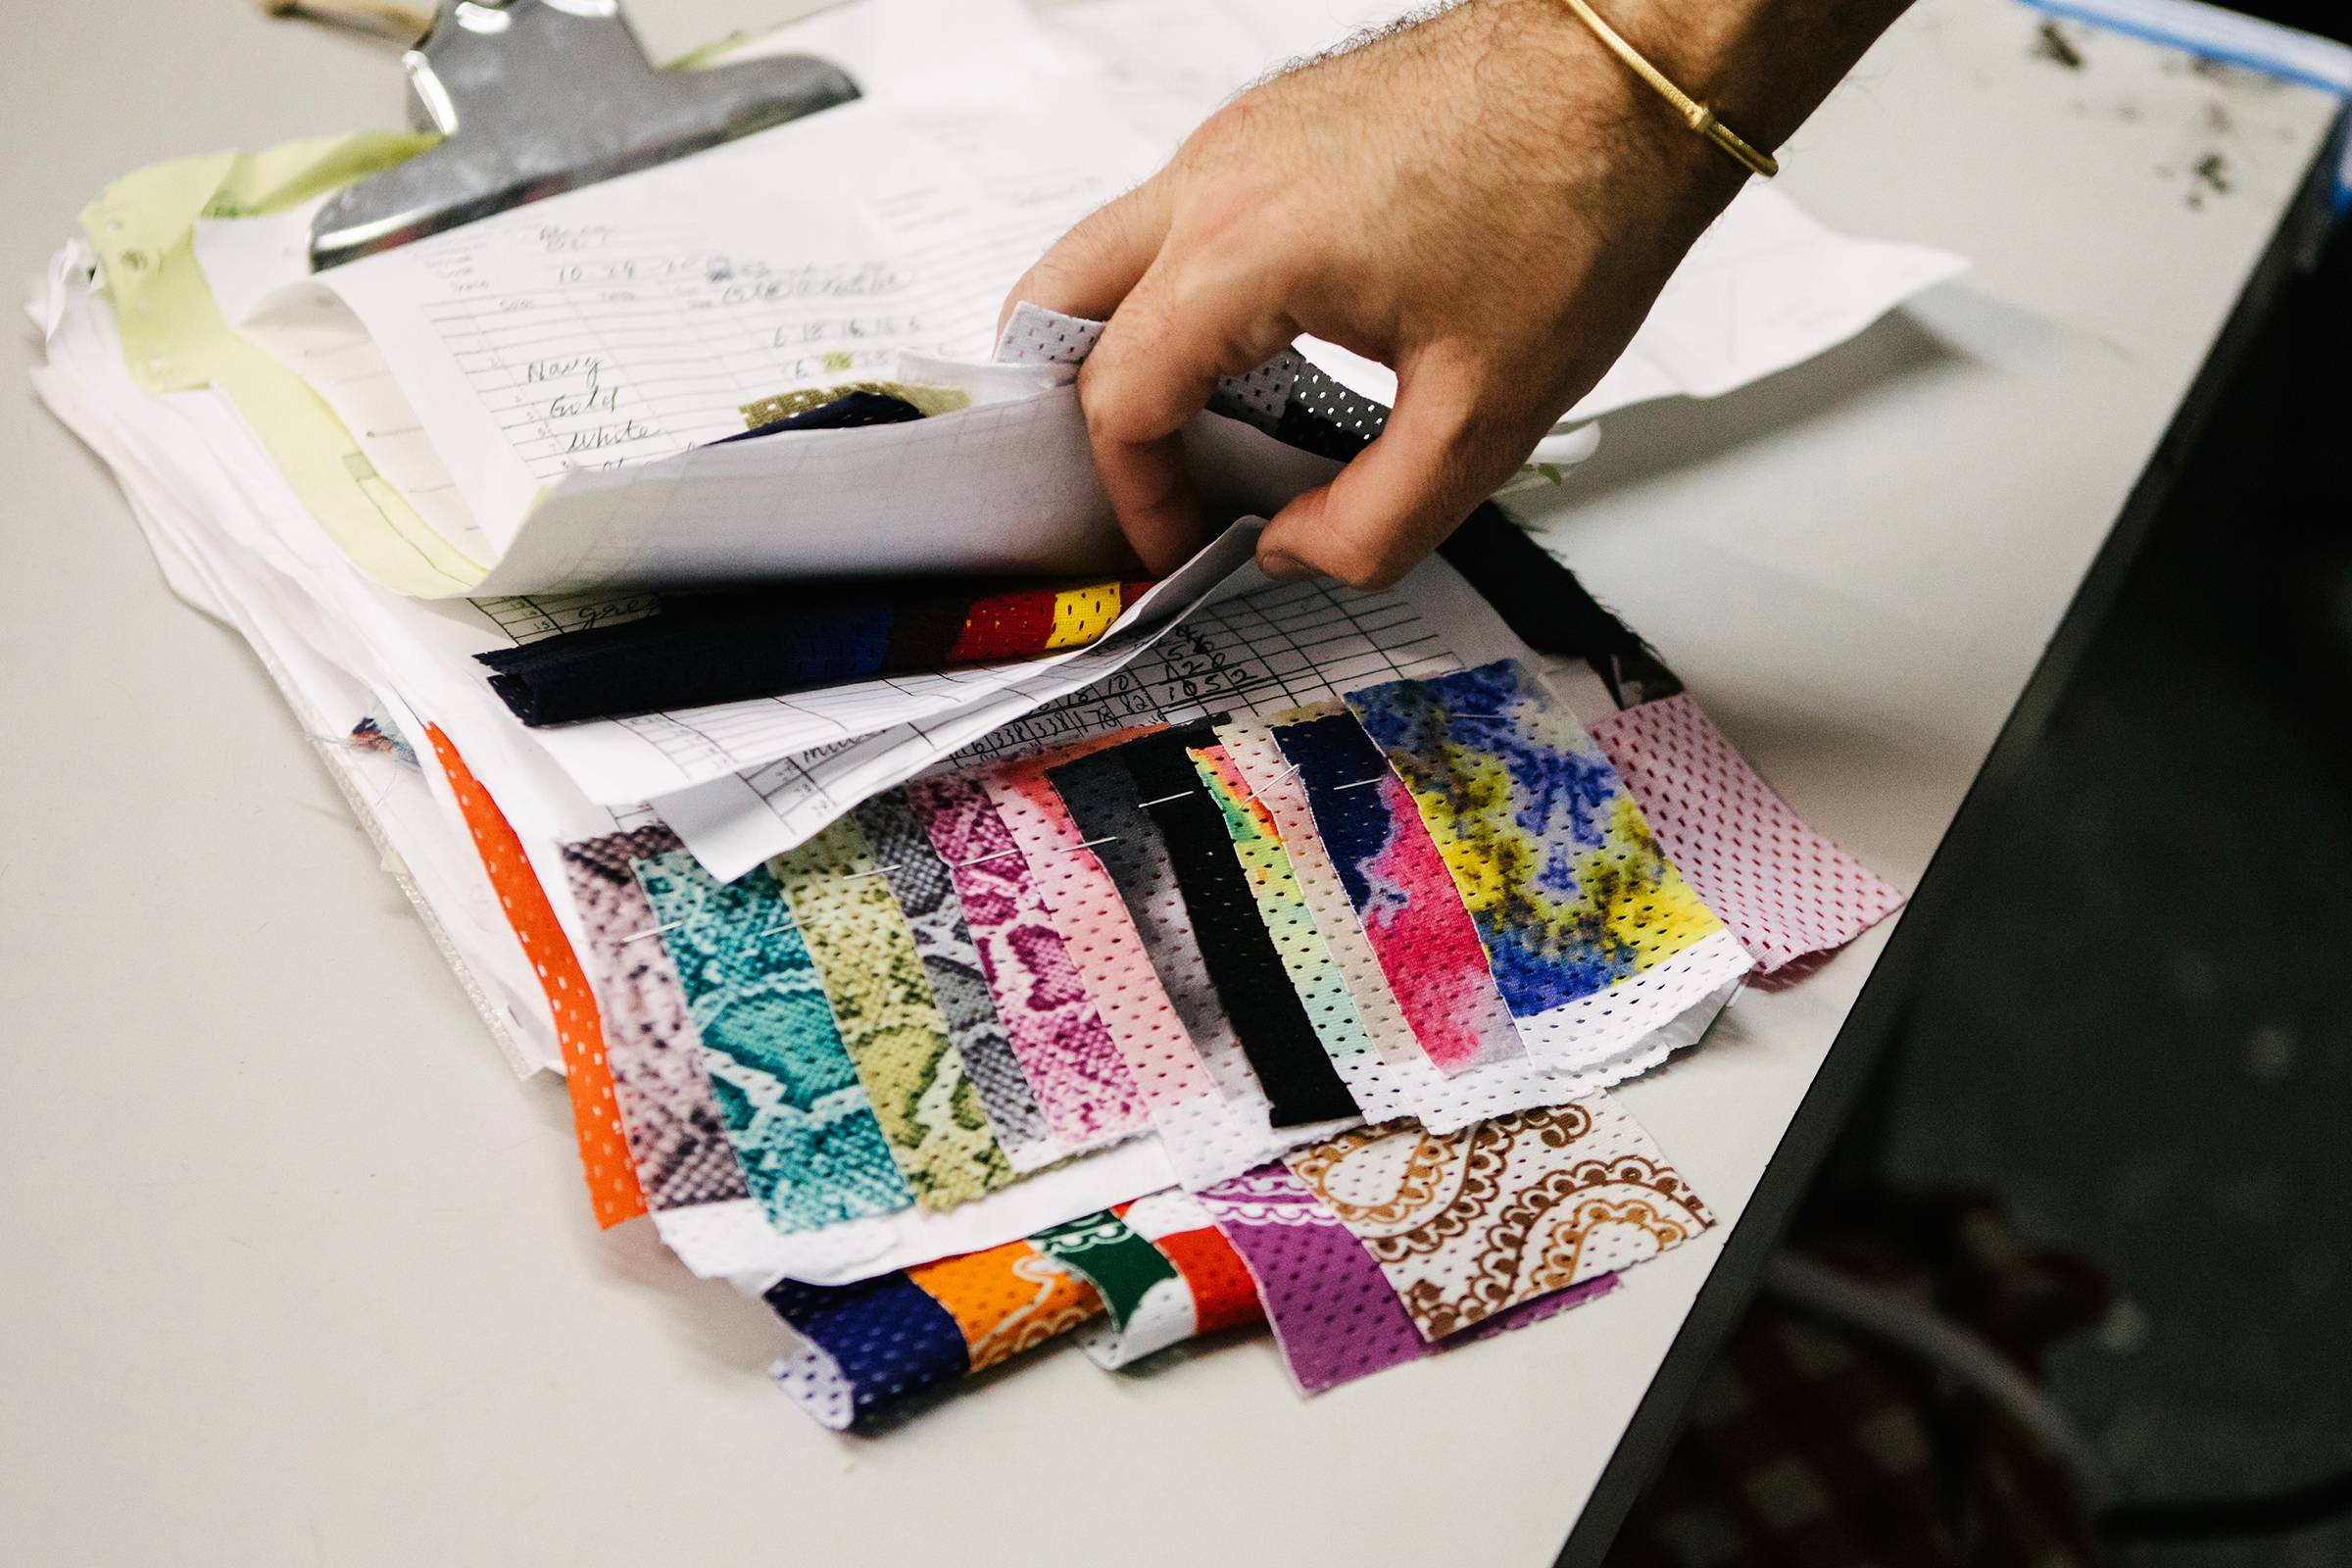 Fabric swatches and treatment samples in the factory